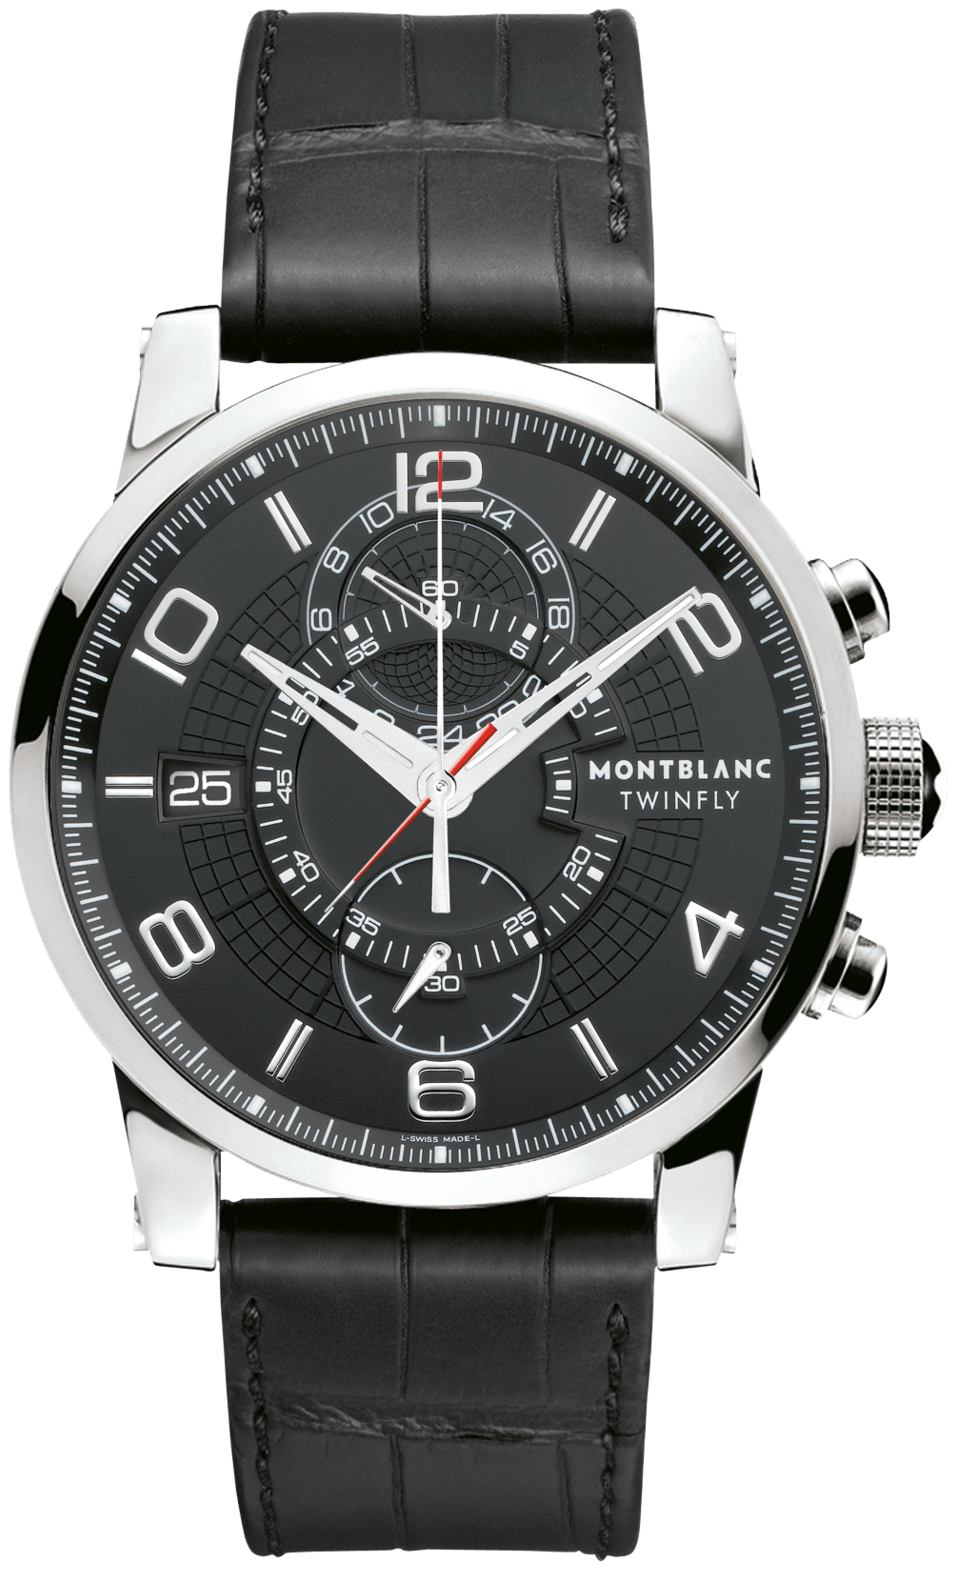 105077 montblanc timewalker twinfly chronograph mens watches for Montblanc watches